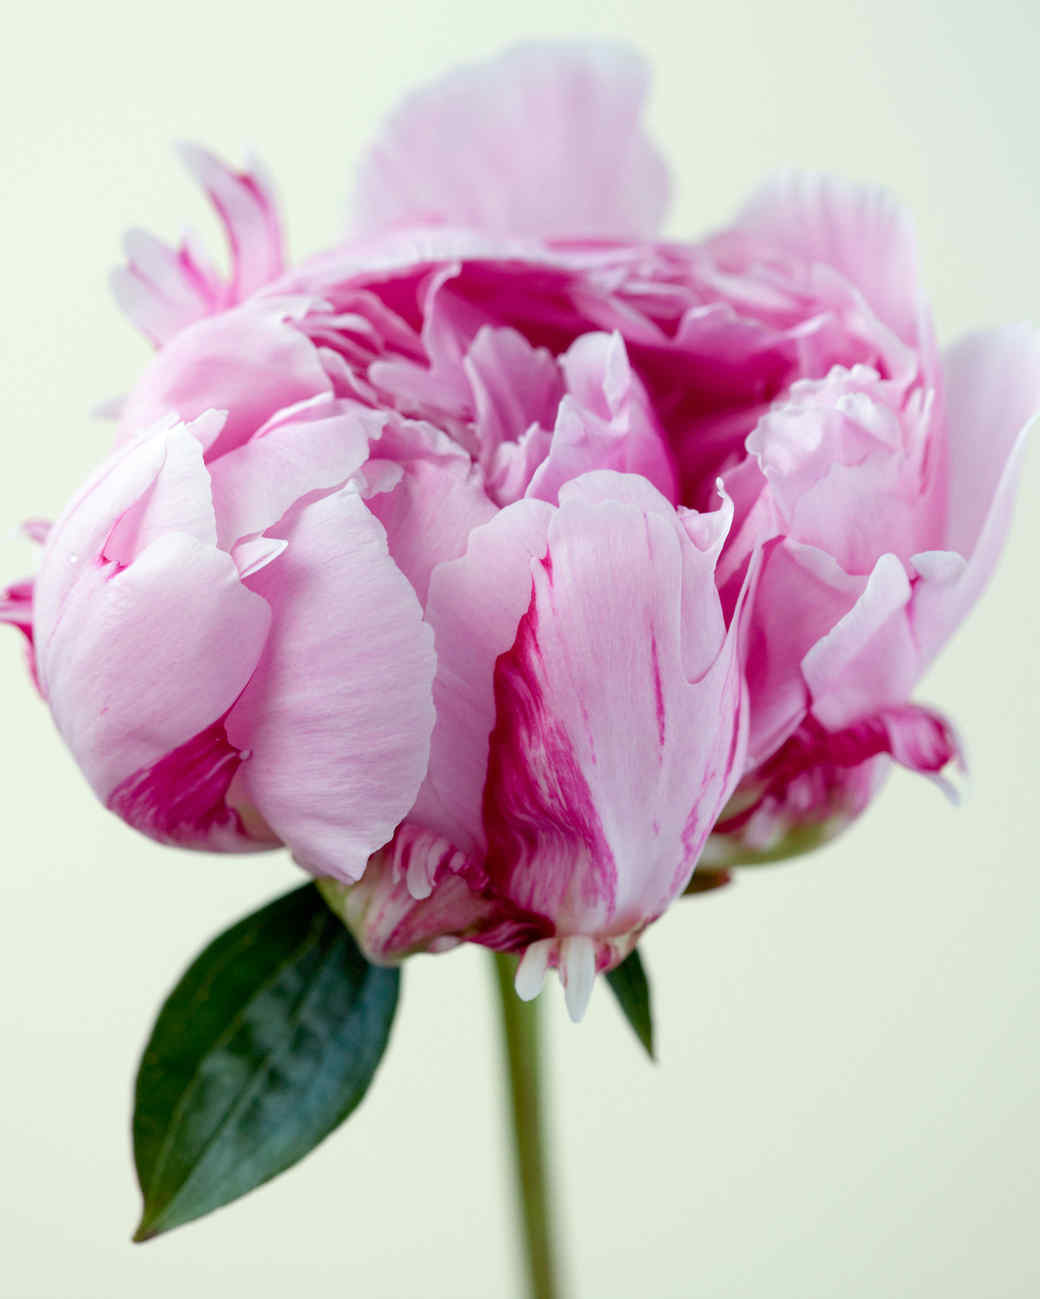 a peony flower against a white background